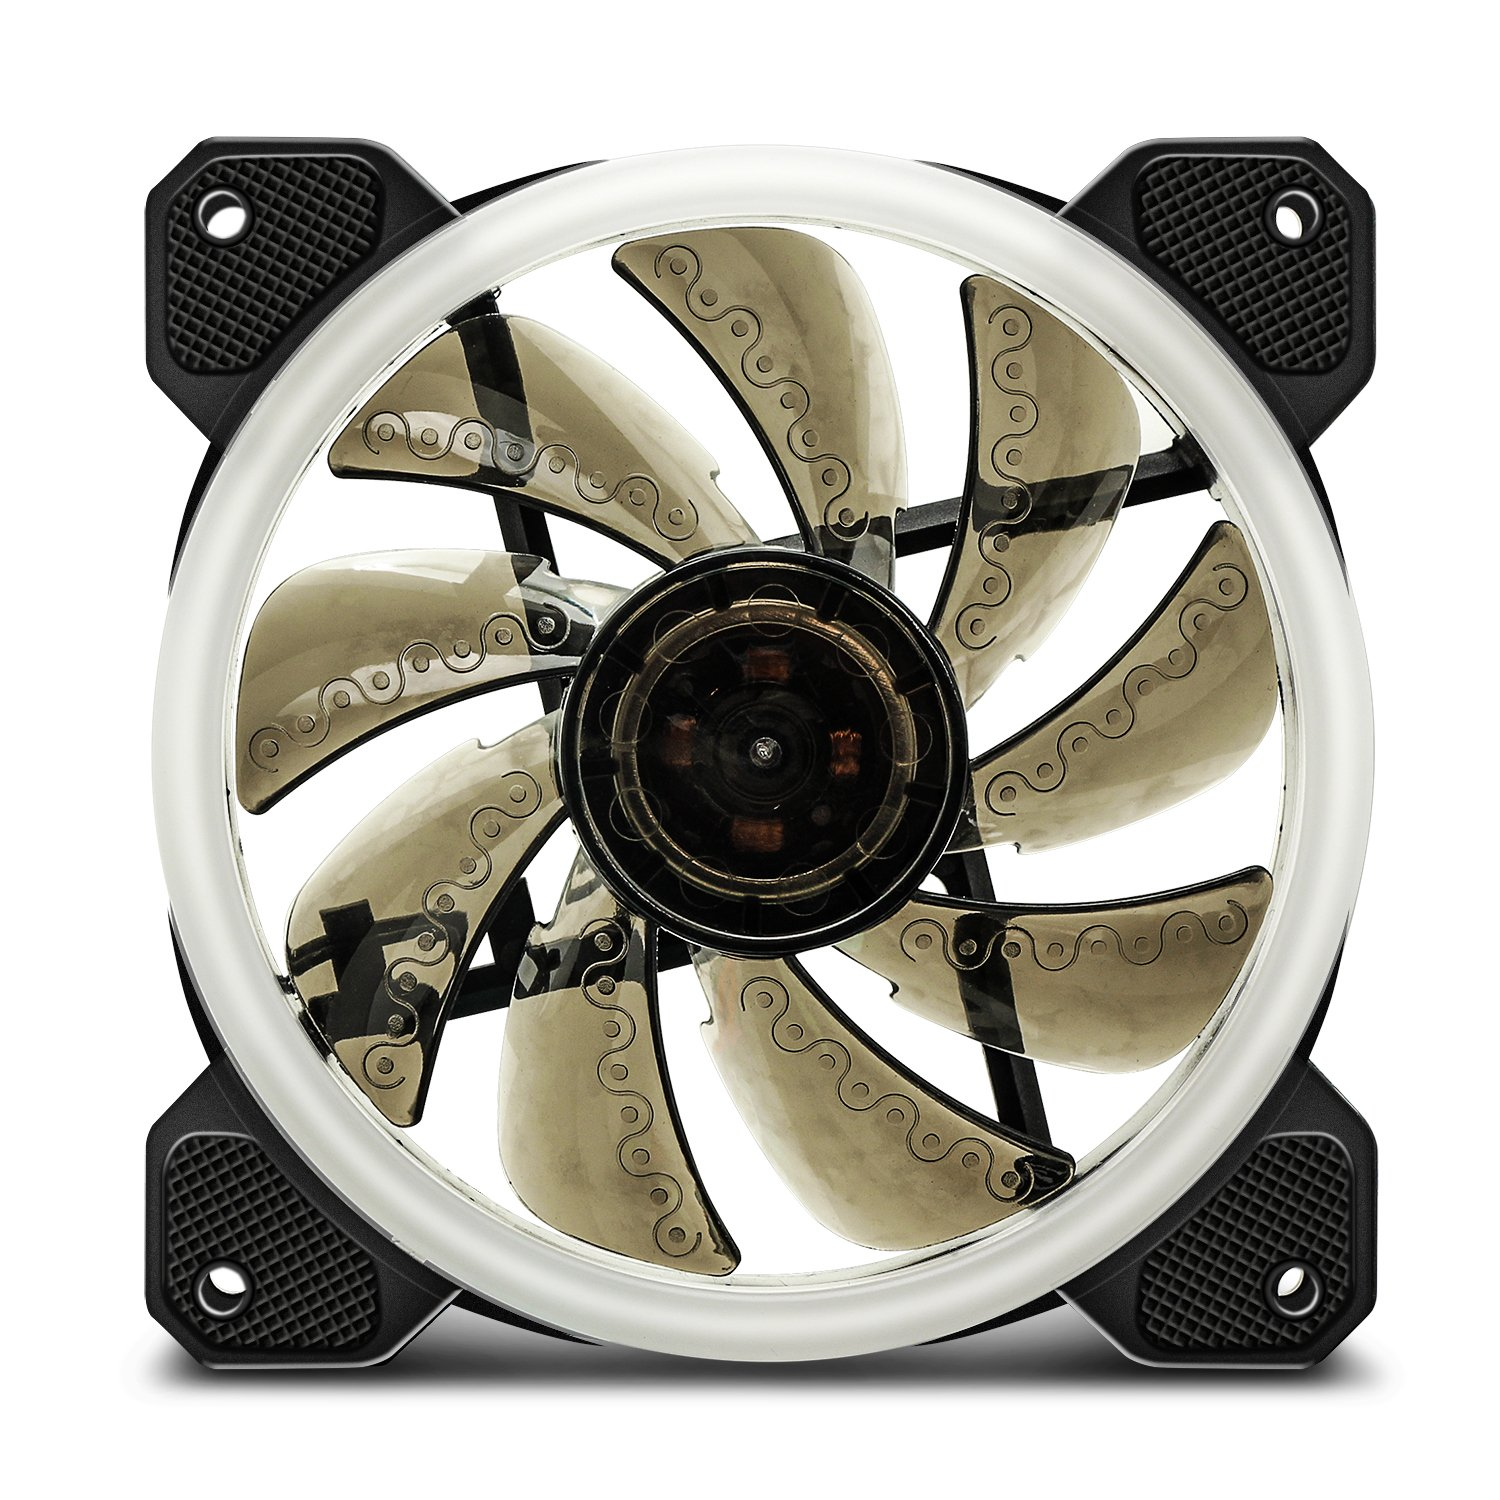 Aigo Aurora DR12 3IN1 Kit Case Fan 3-Pack RGB LED 120mm High Performance High Airflow Adjustable colorful PC CPU Computer Case Cooling Cooler with Controller (DR12 3IN1) by Aigo (Image #8)